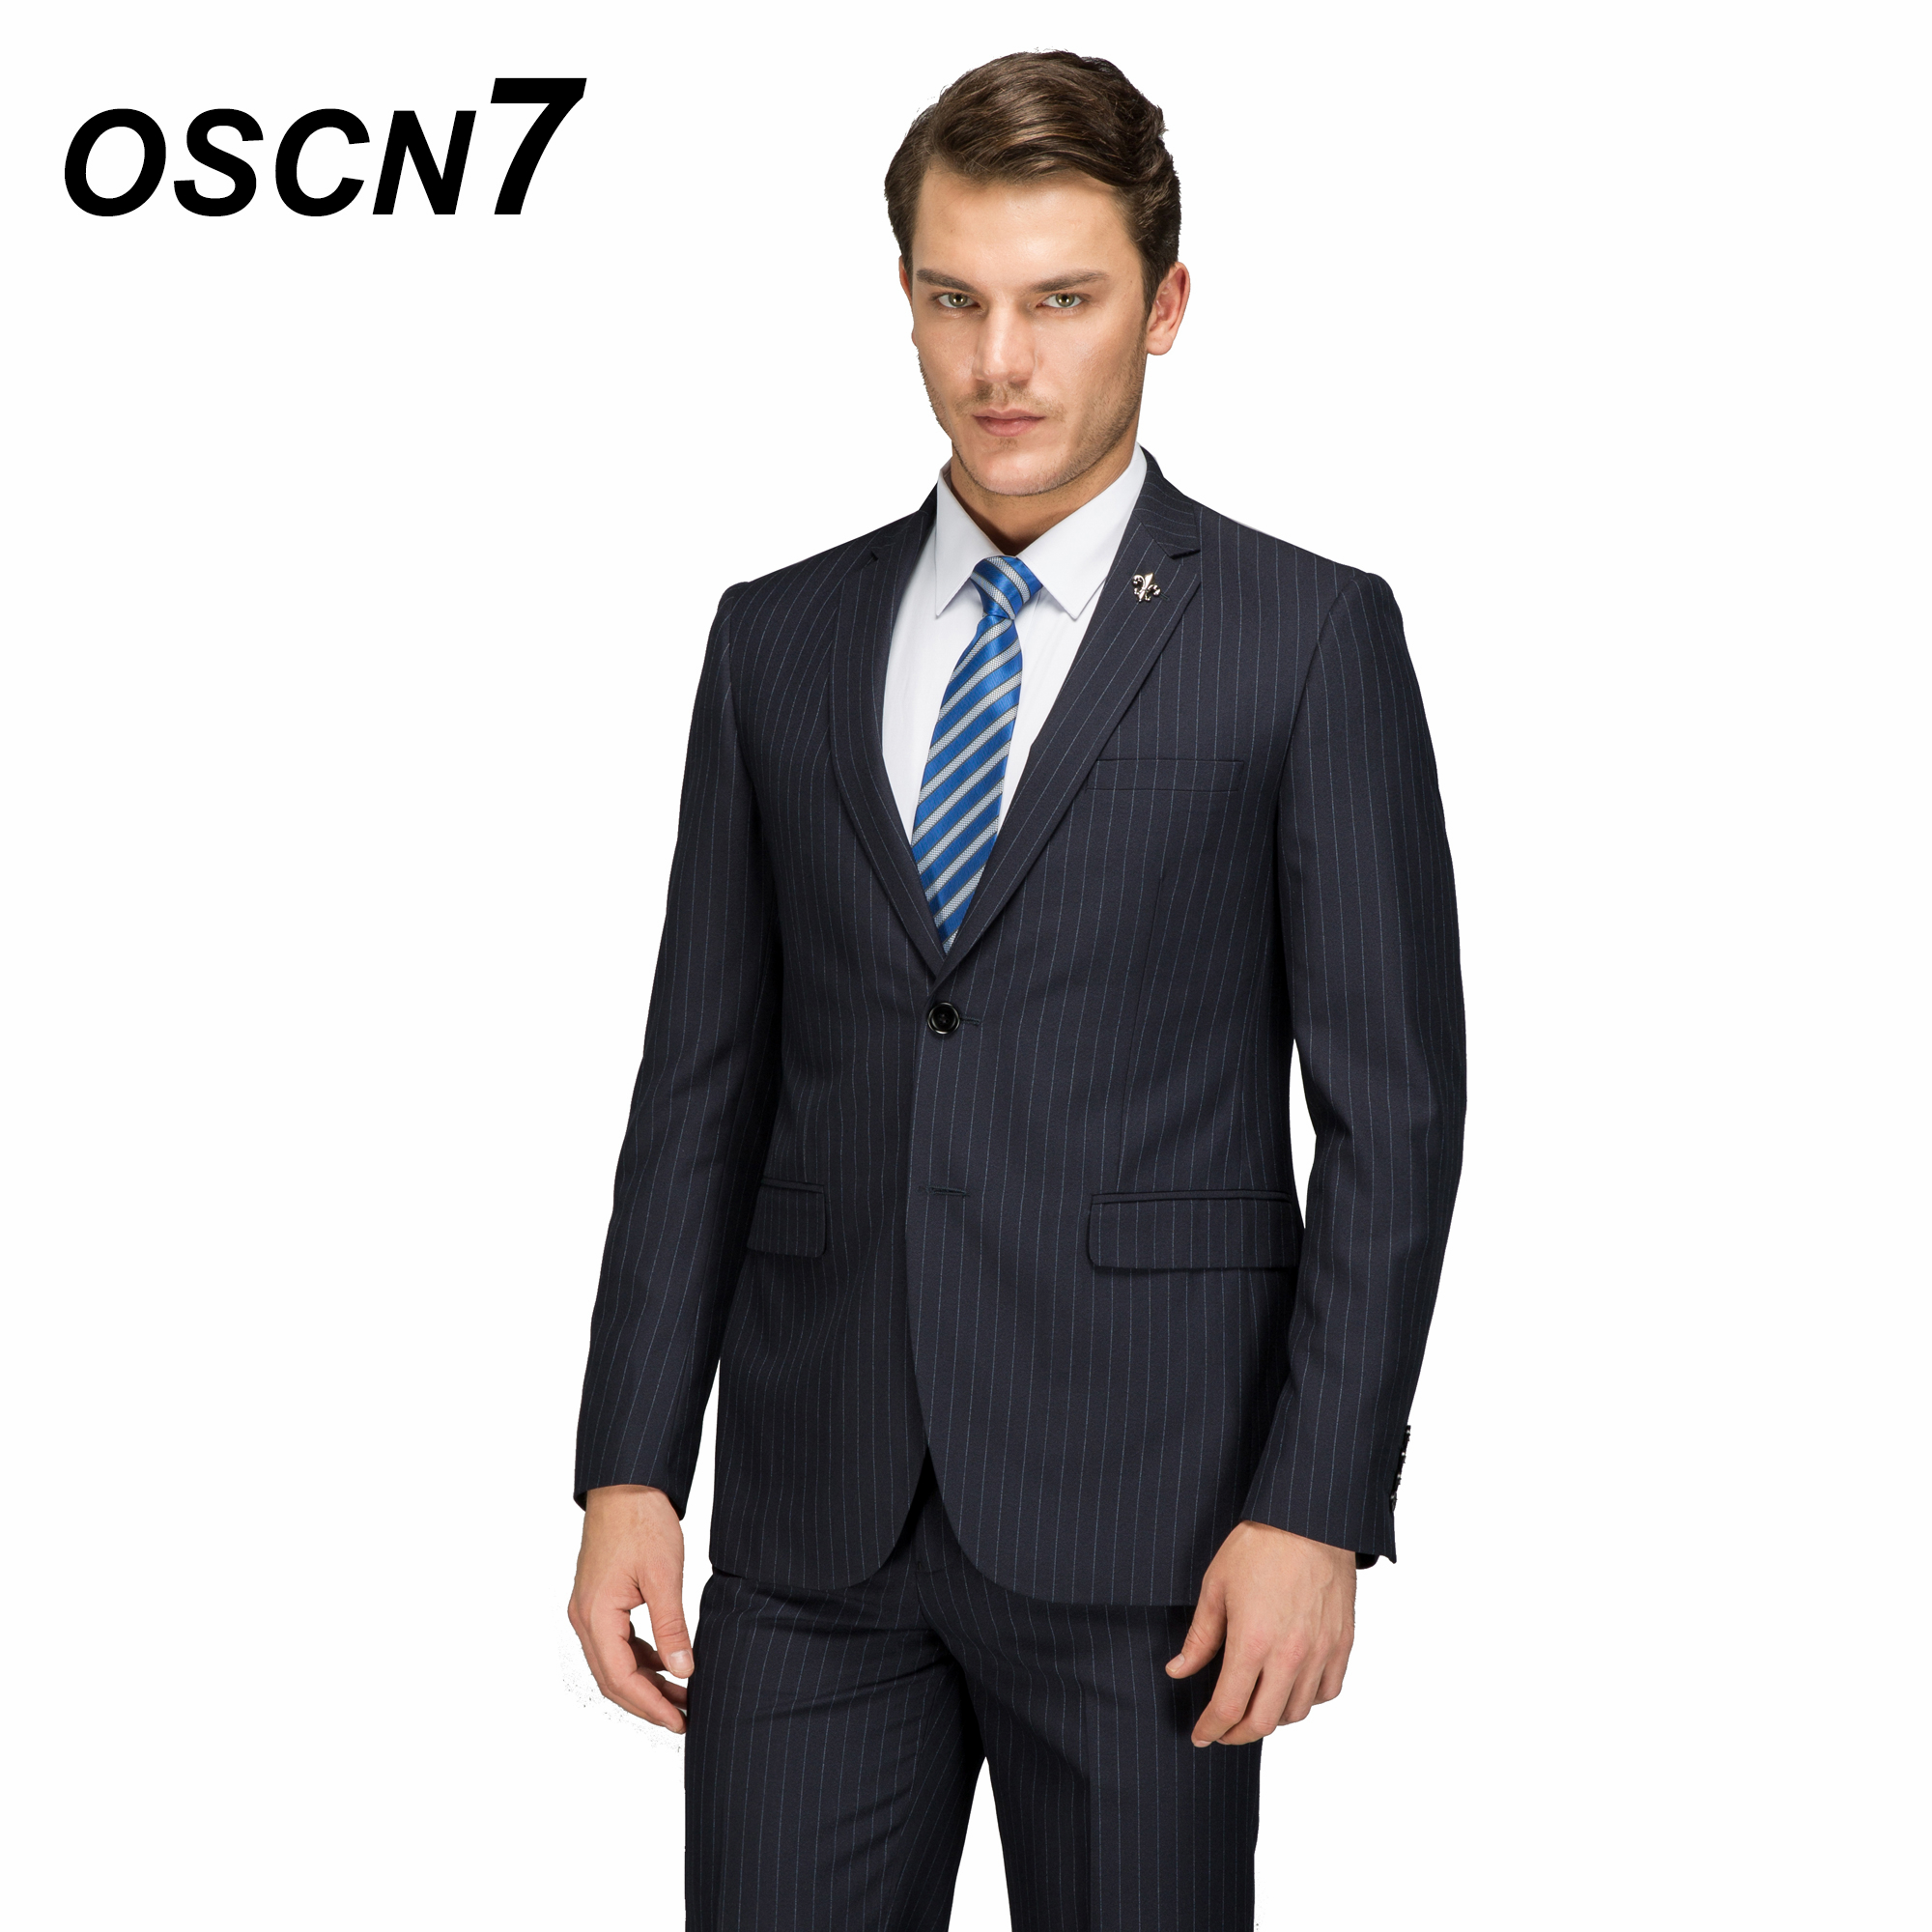 Oscn7 Wool Striped Customize Suit Men Plus Size Casual Business Wedding Mens Suits Fashion Terno Masculino 4624-11 At All Costs